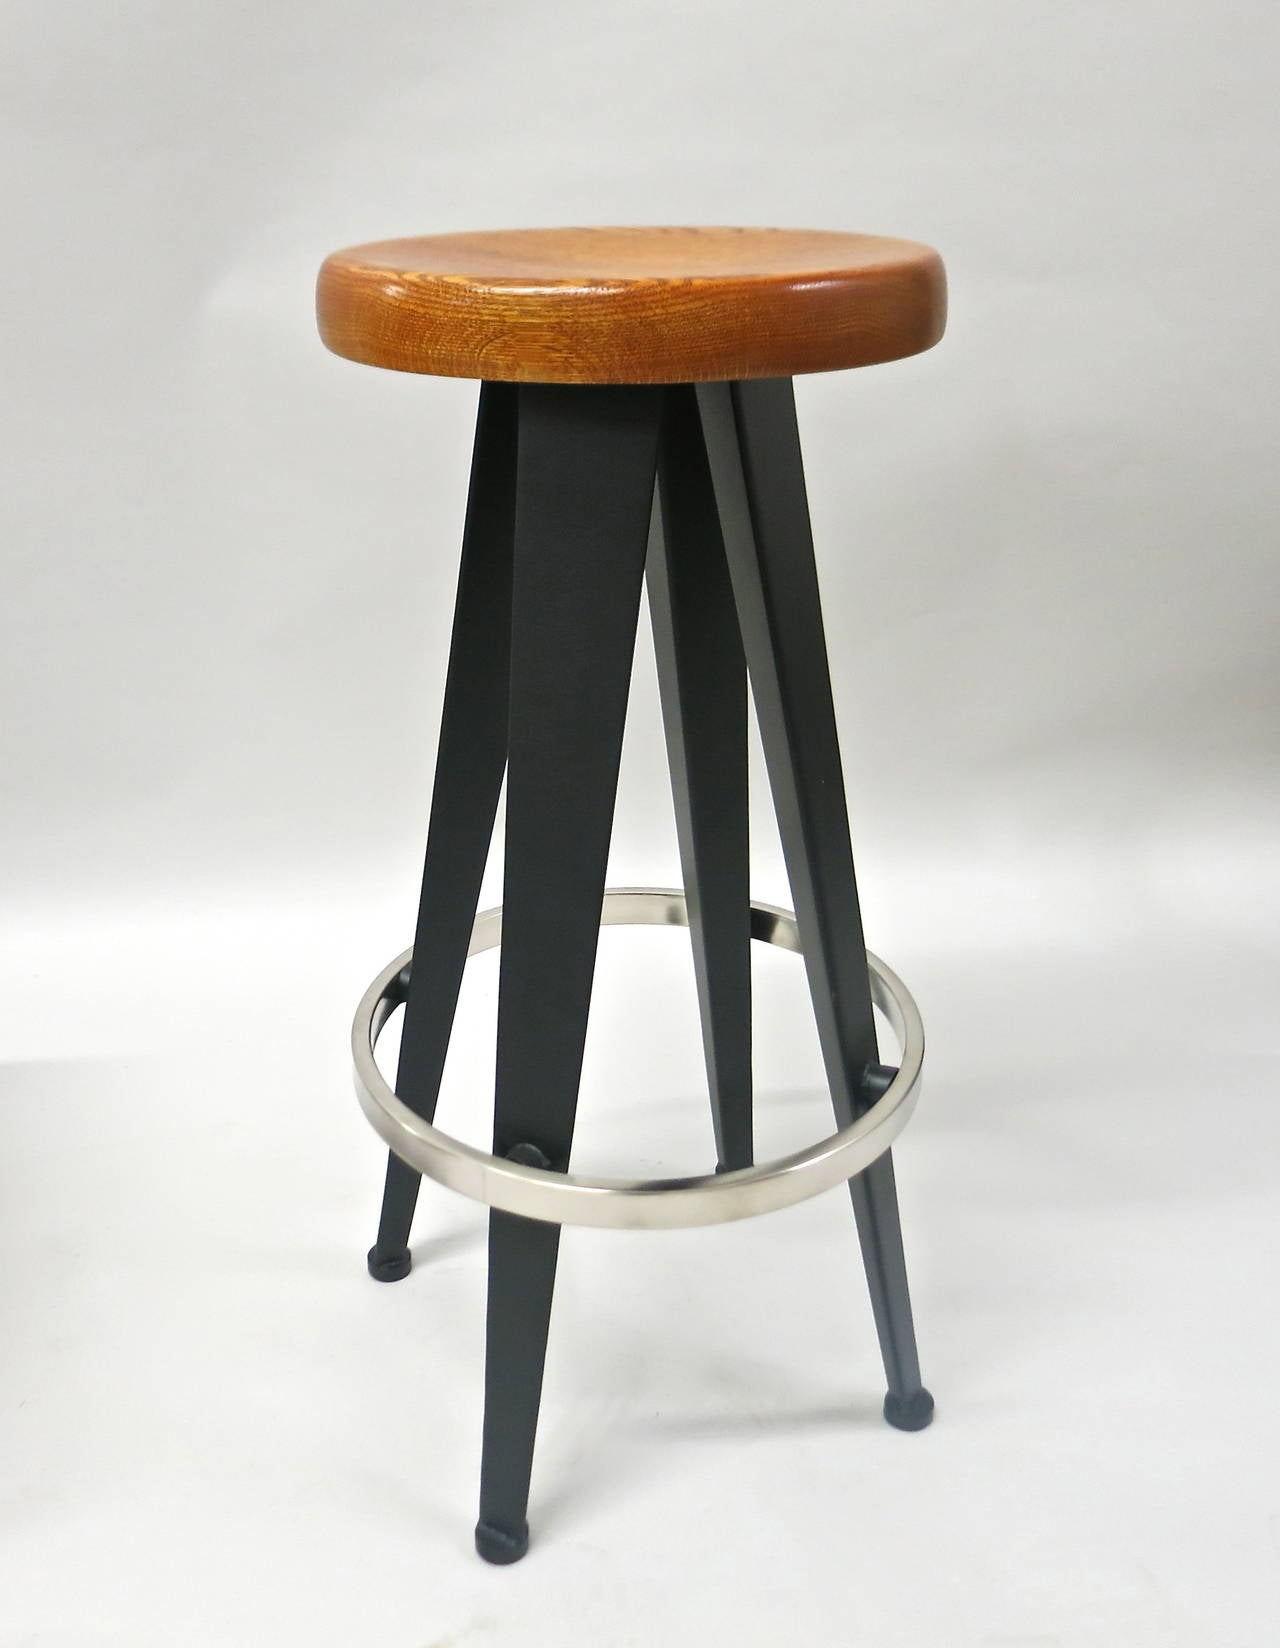 six bar stools original design by jean prouv in 1950